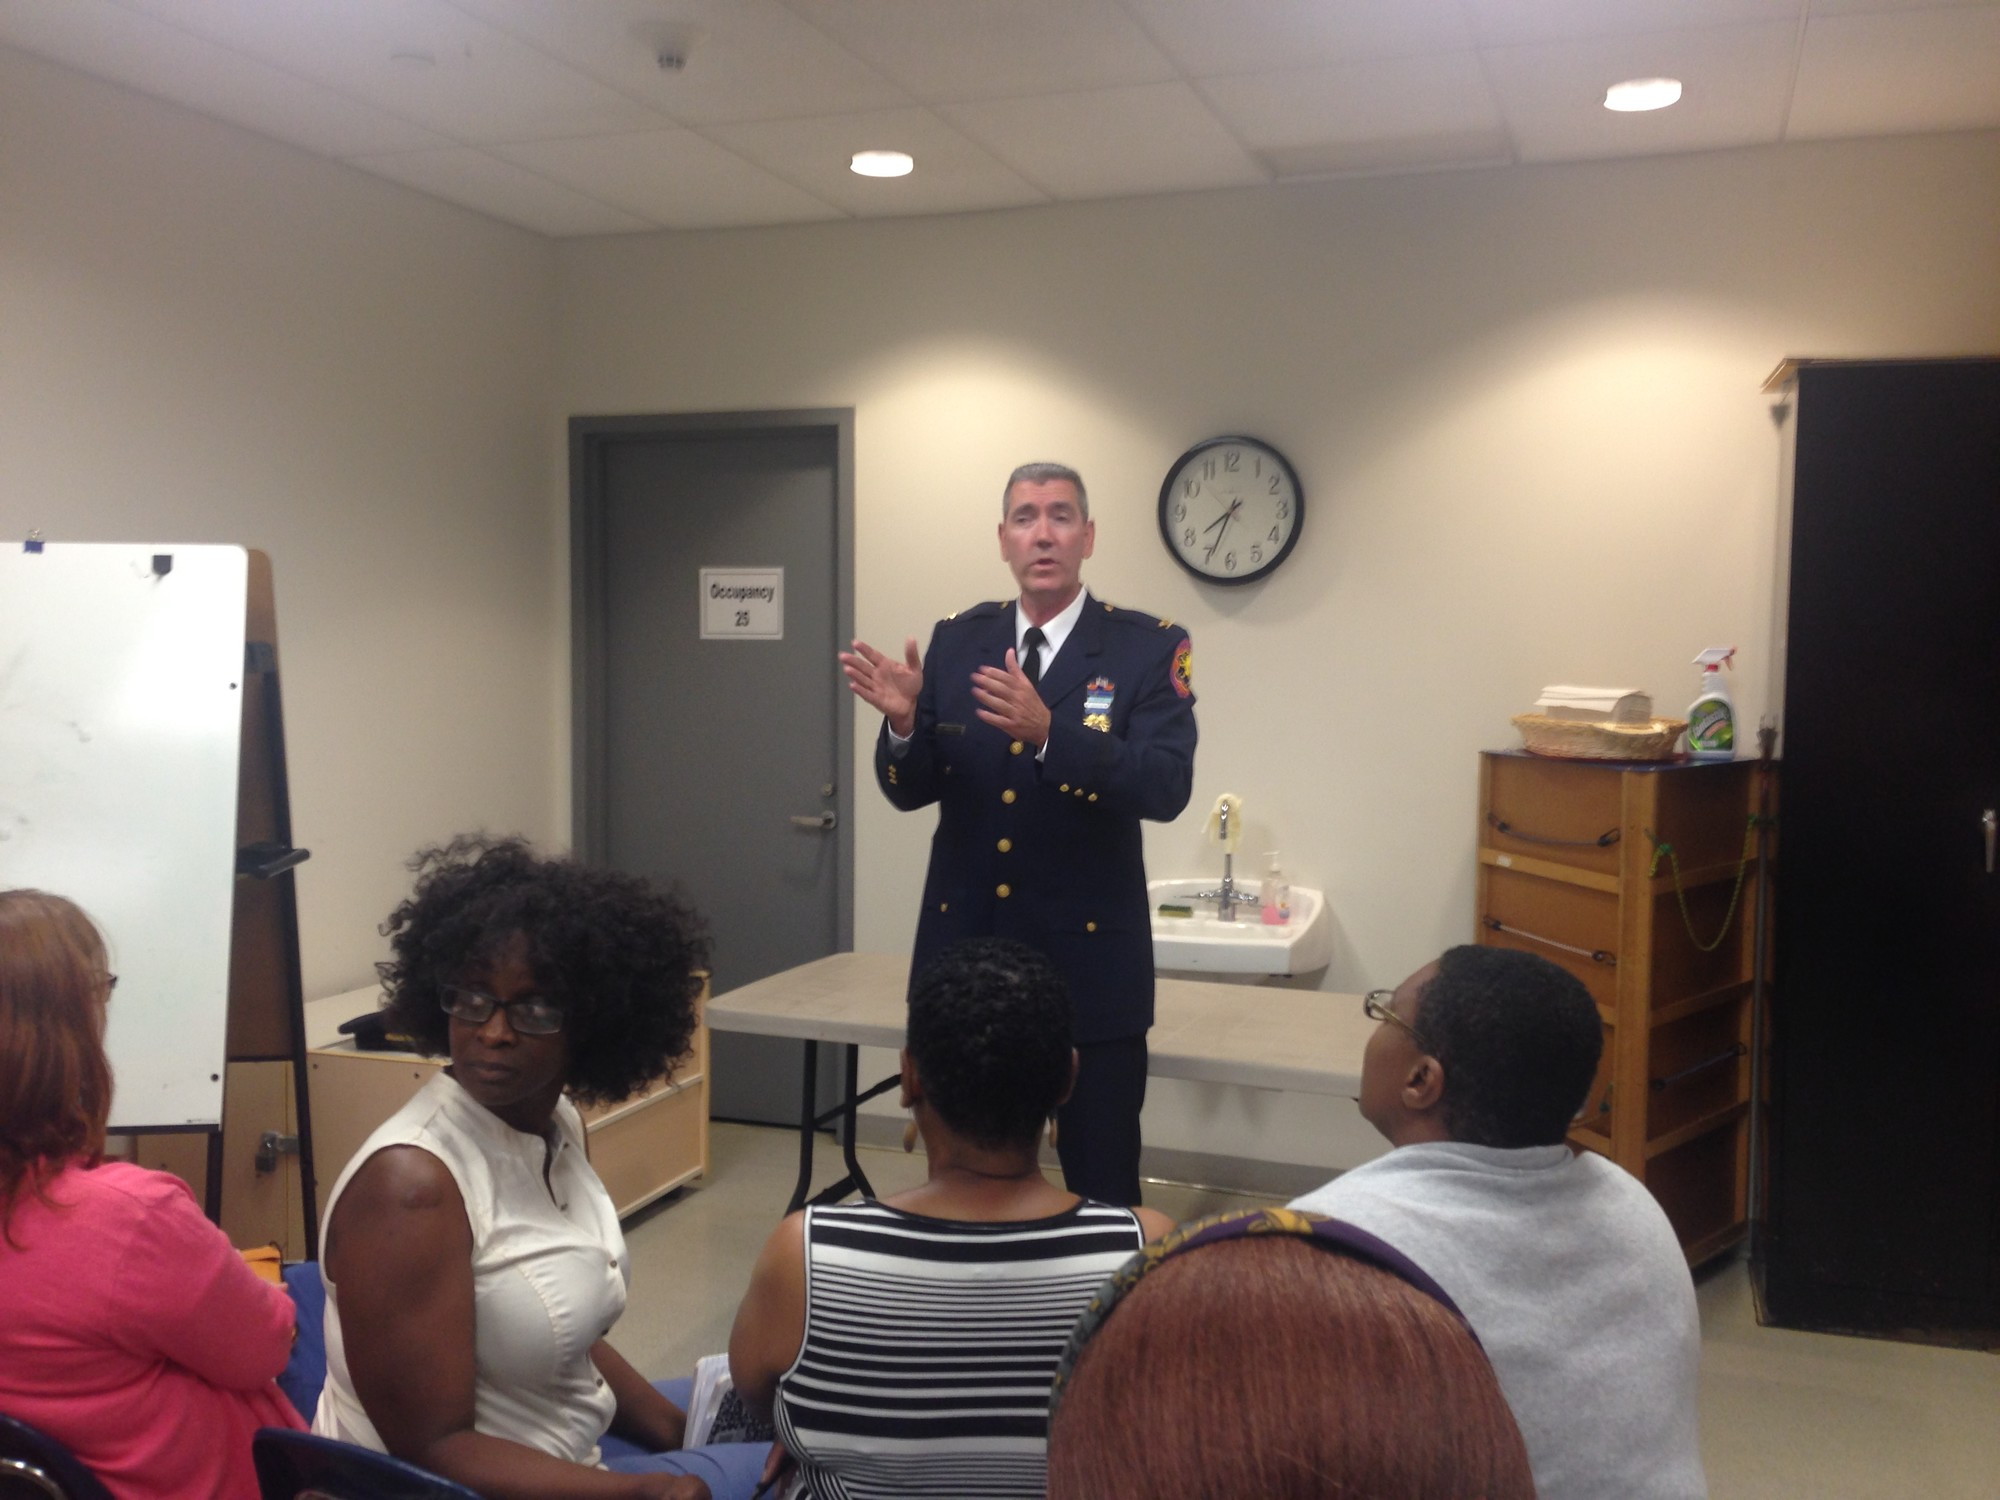 Inspector Dan Flanagan, of the Nassau County Police Department's 1st Precinct, addressed residents at a community forum last week at the Baldwin Public Library. The forum was organized in response to a fatal shooting on Grand Avenue on Aug. 2.